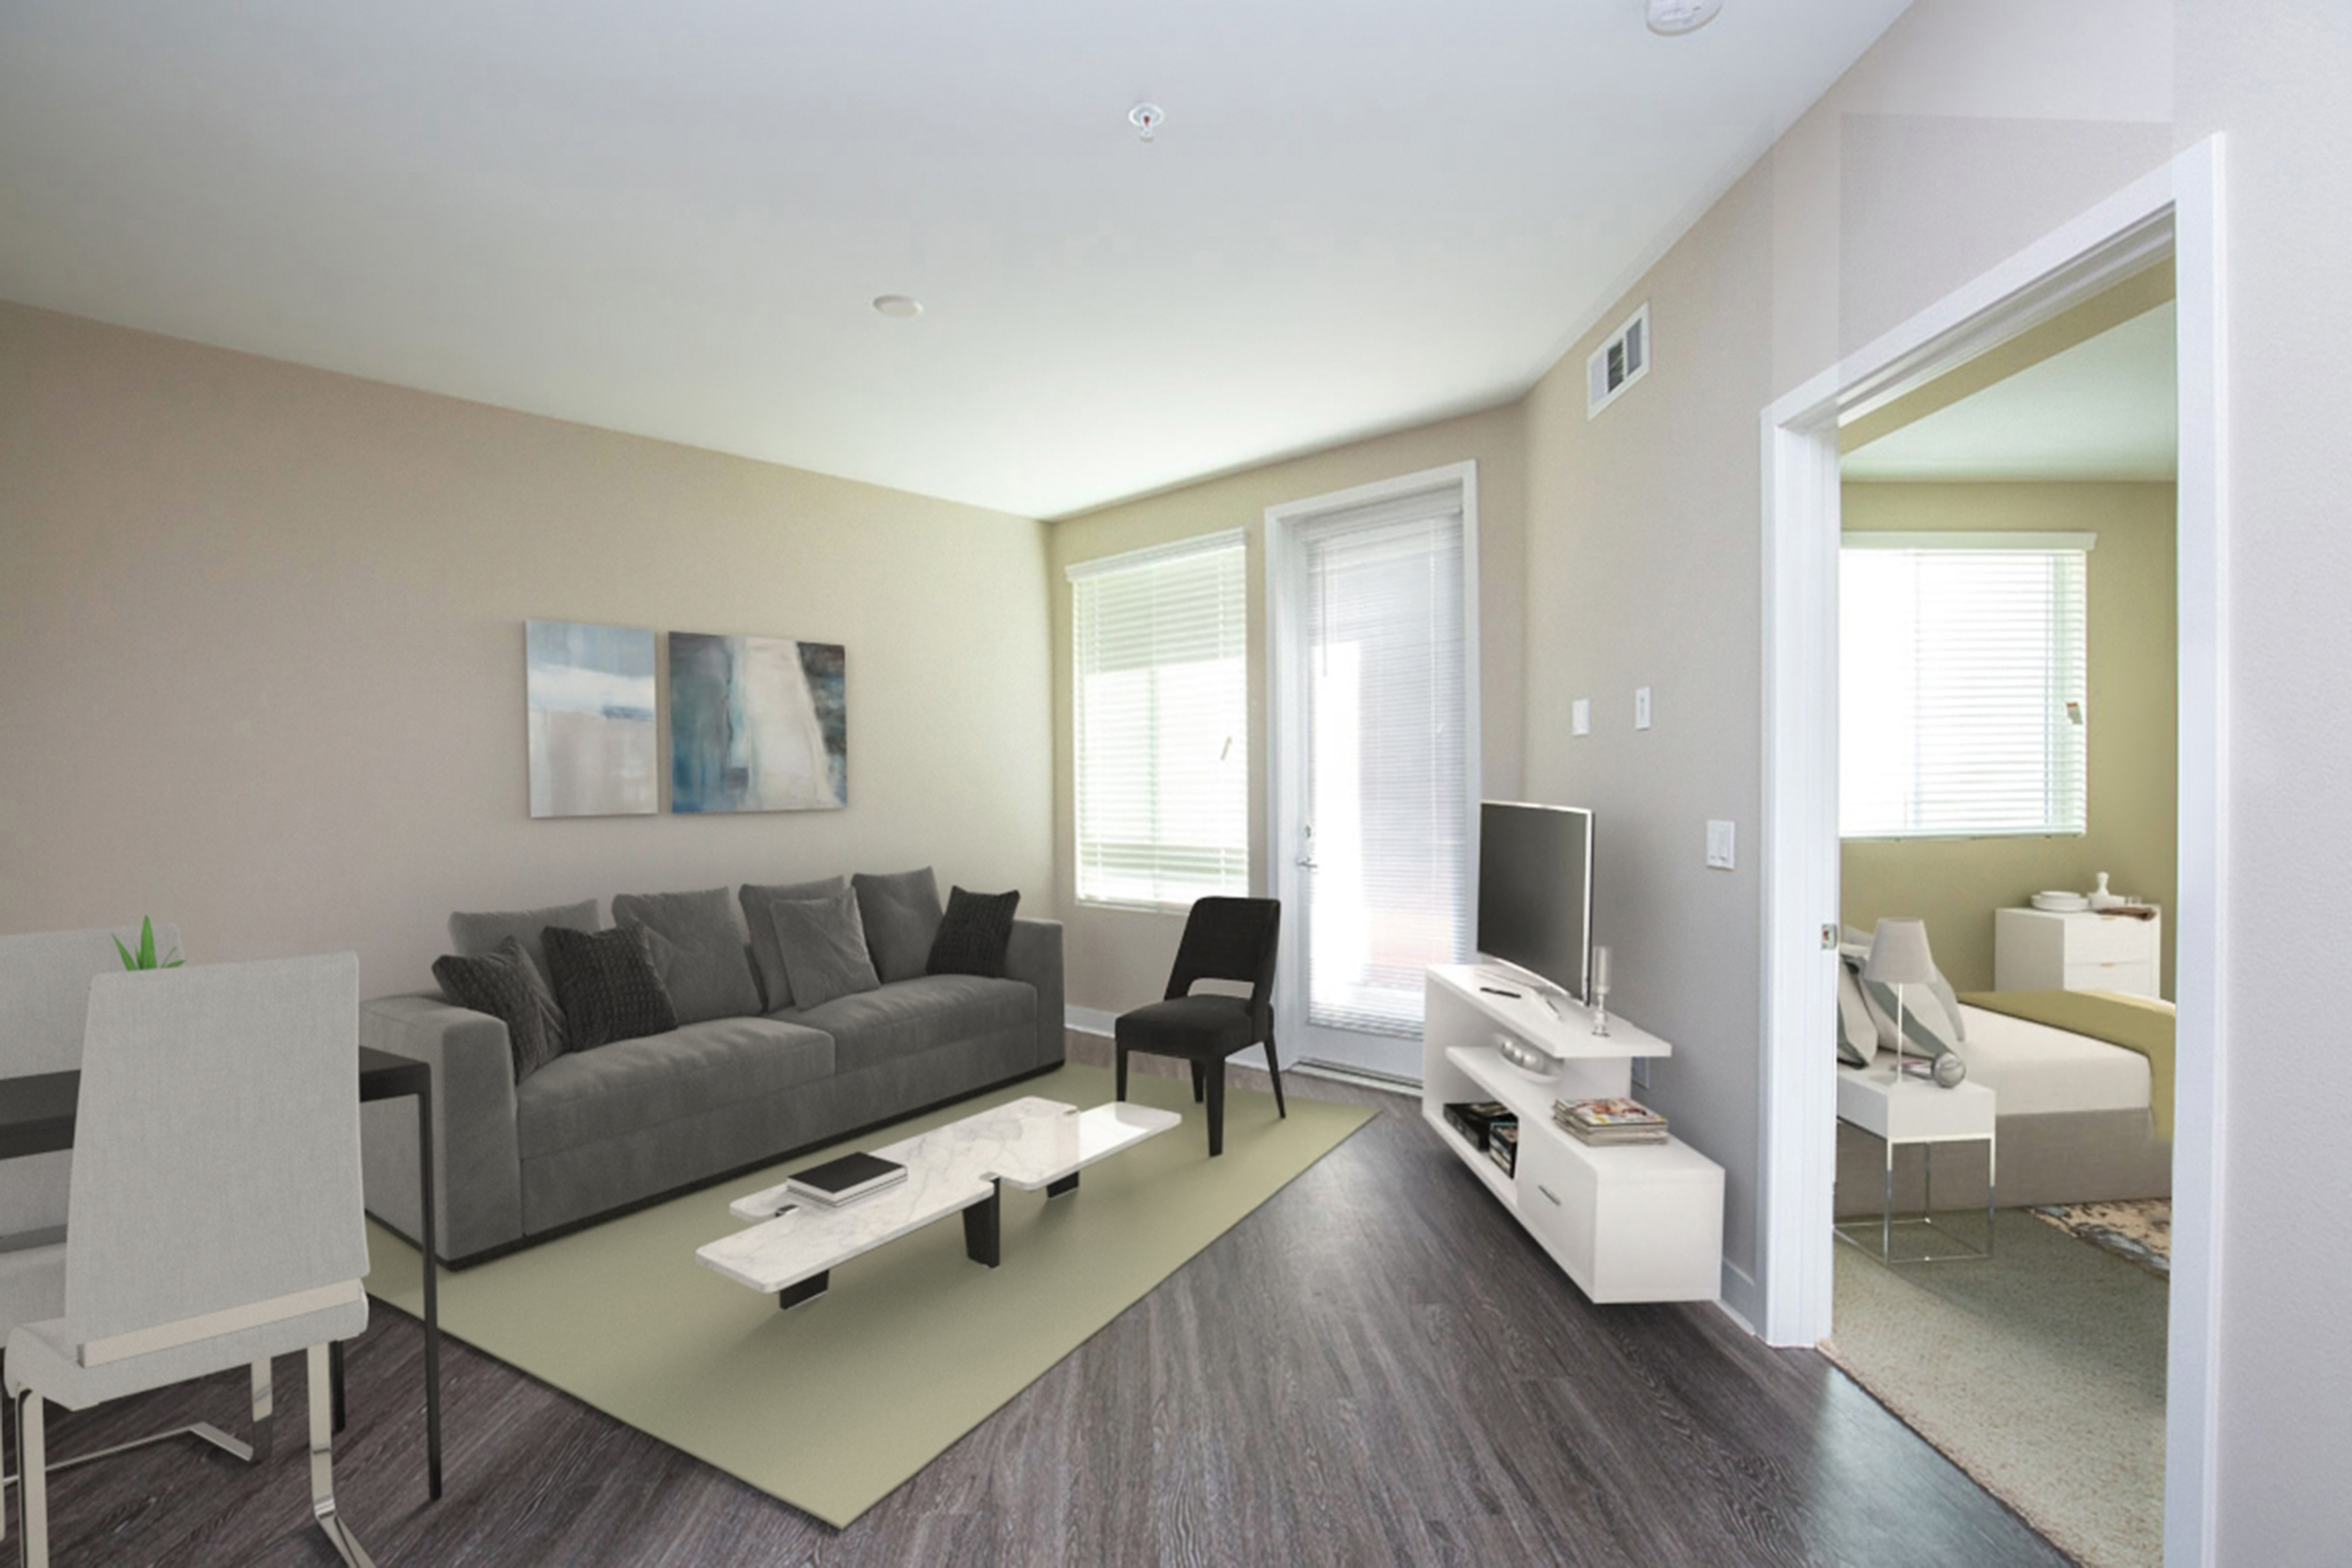 Living room with gray couch